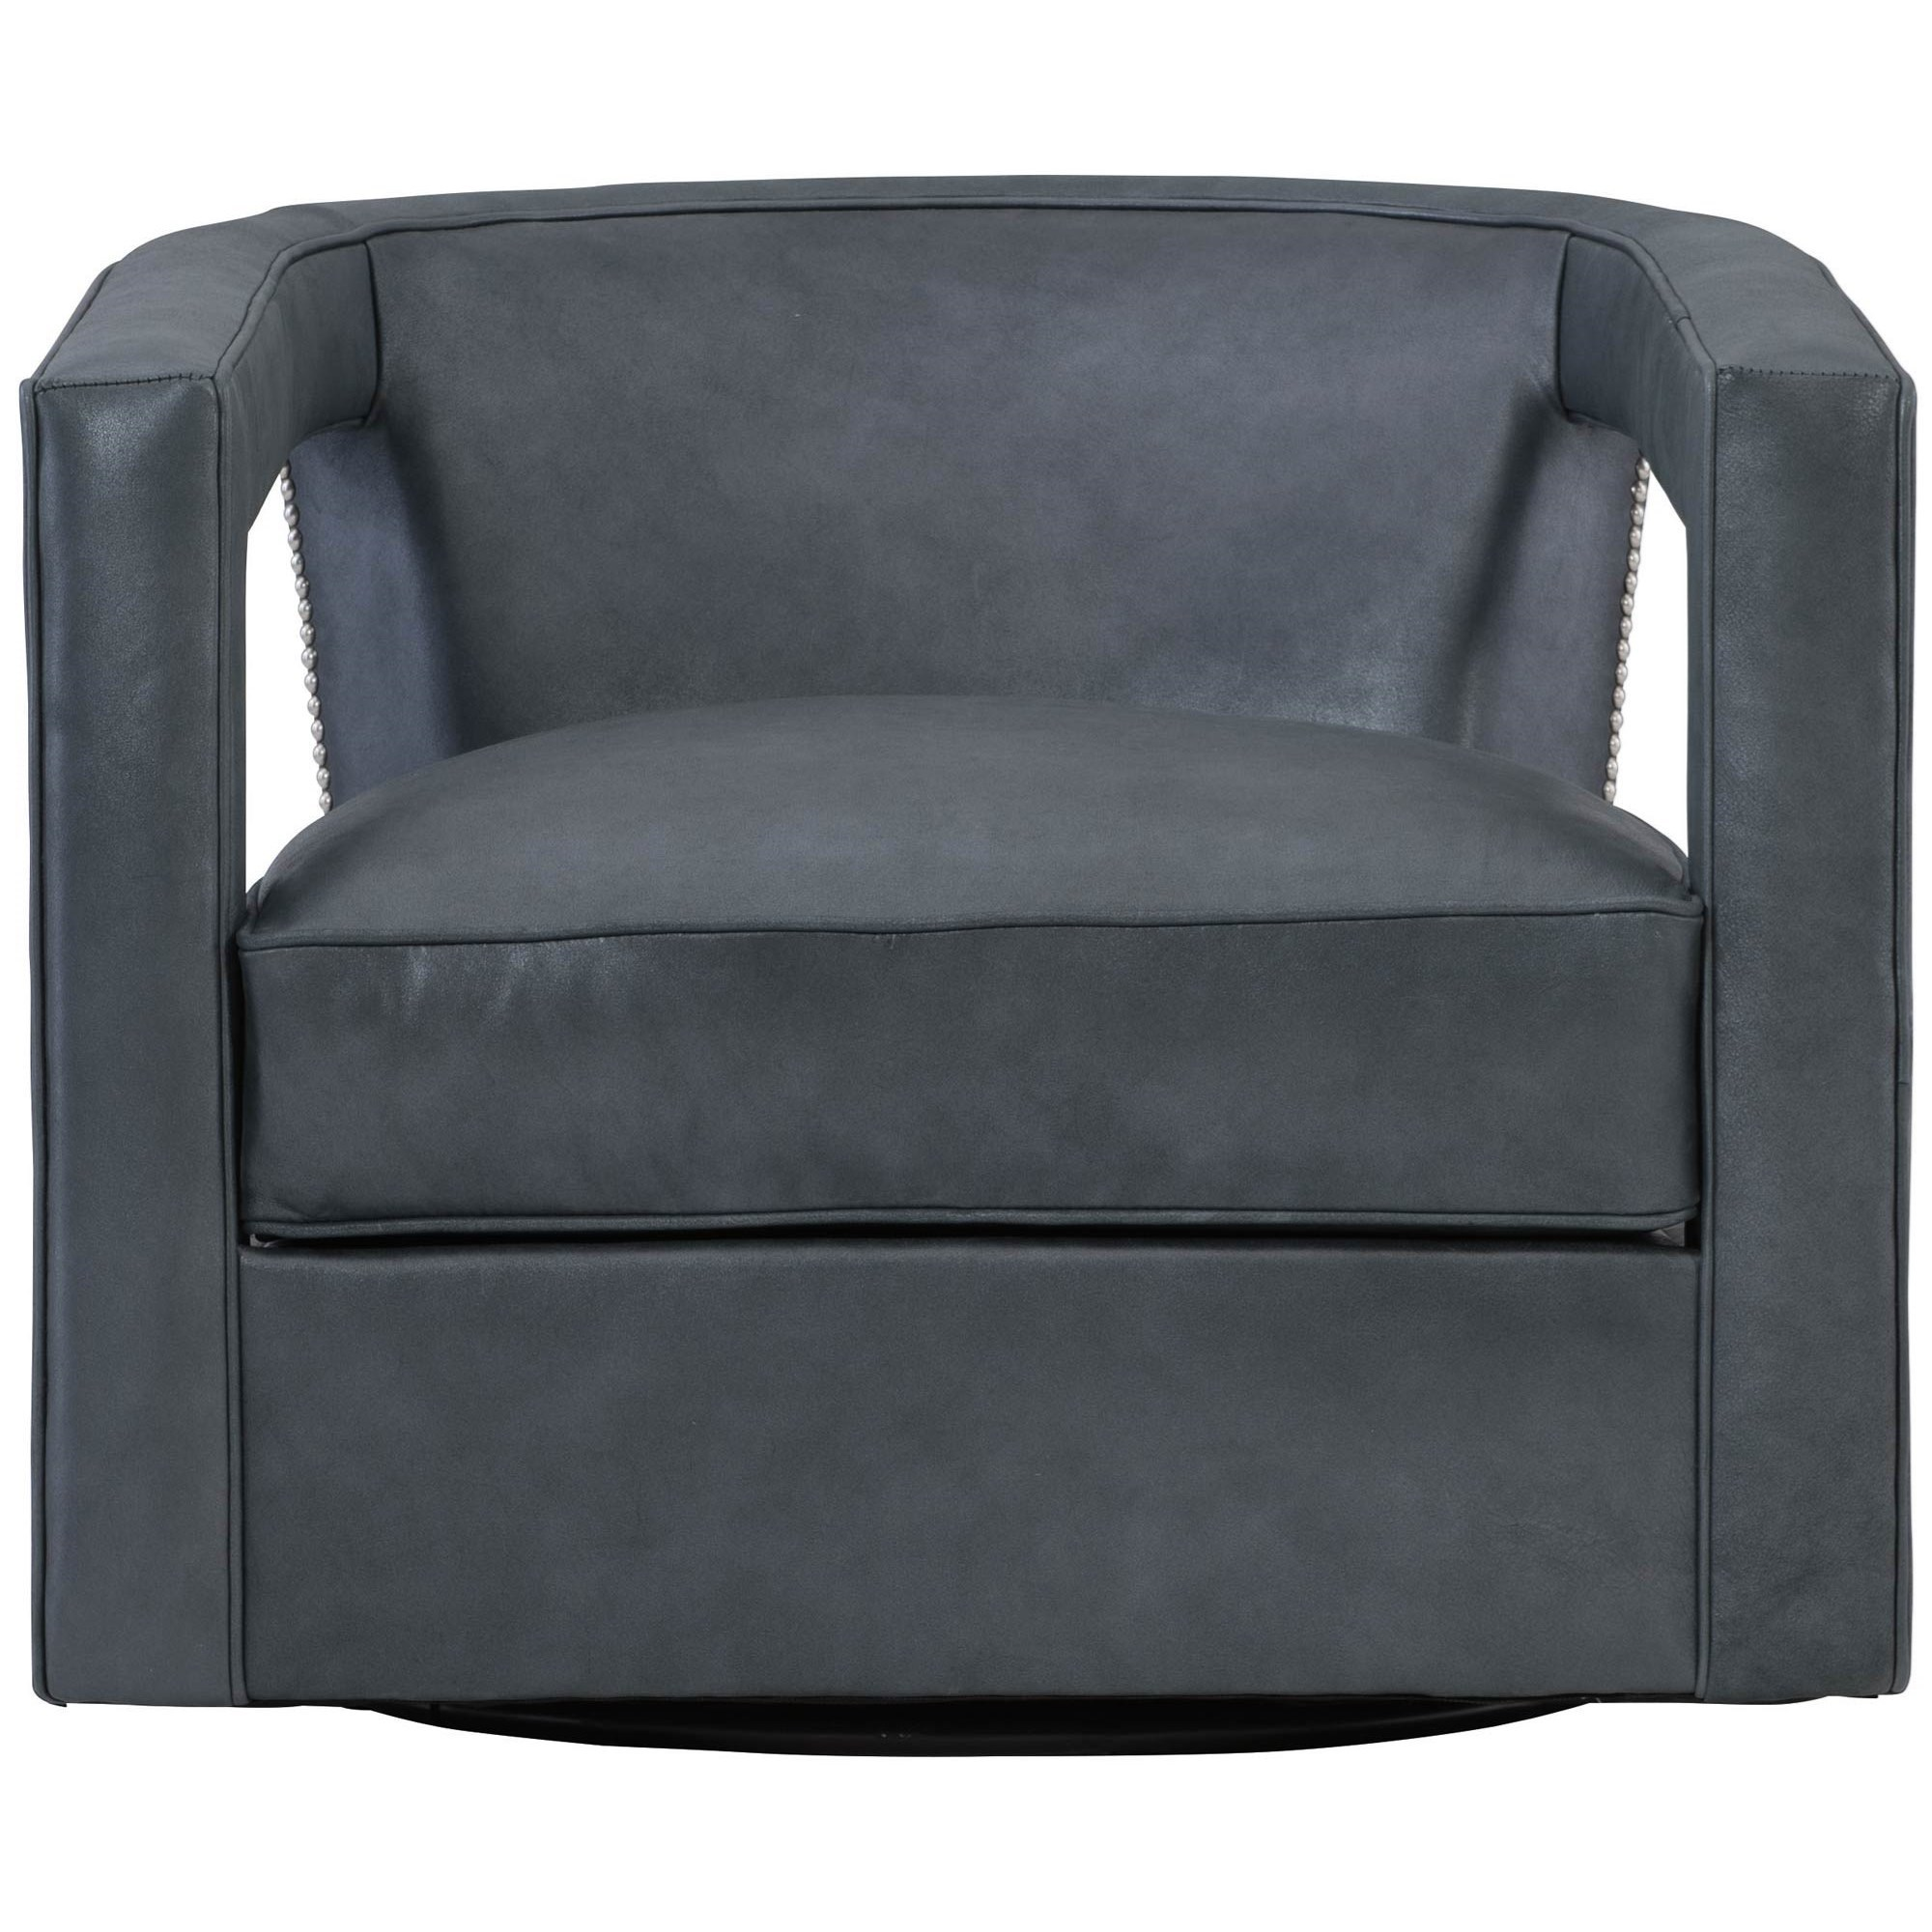 Alana Contemporary Swivel Chair with Nailheads at Williams & Kay